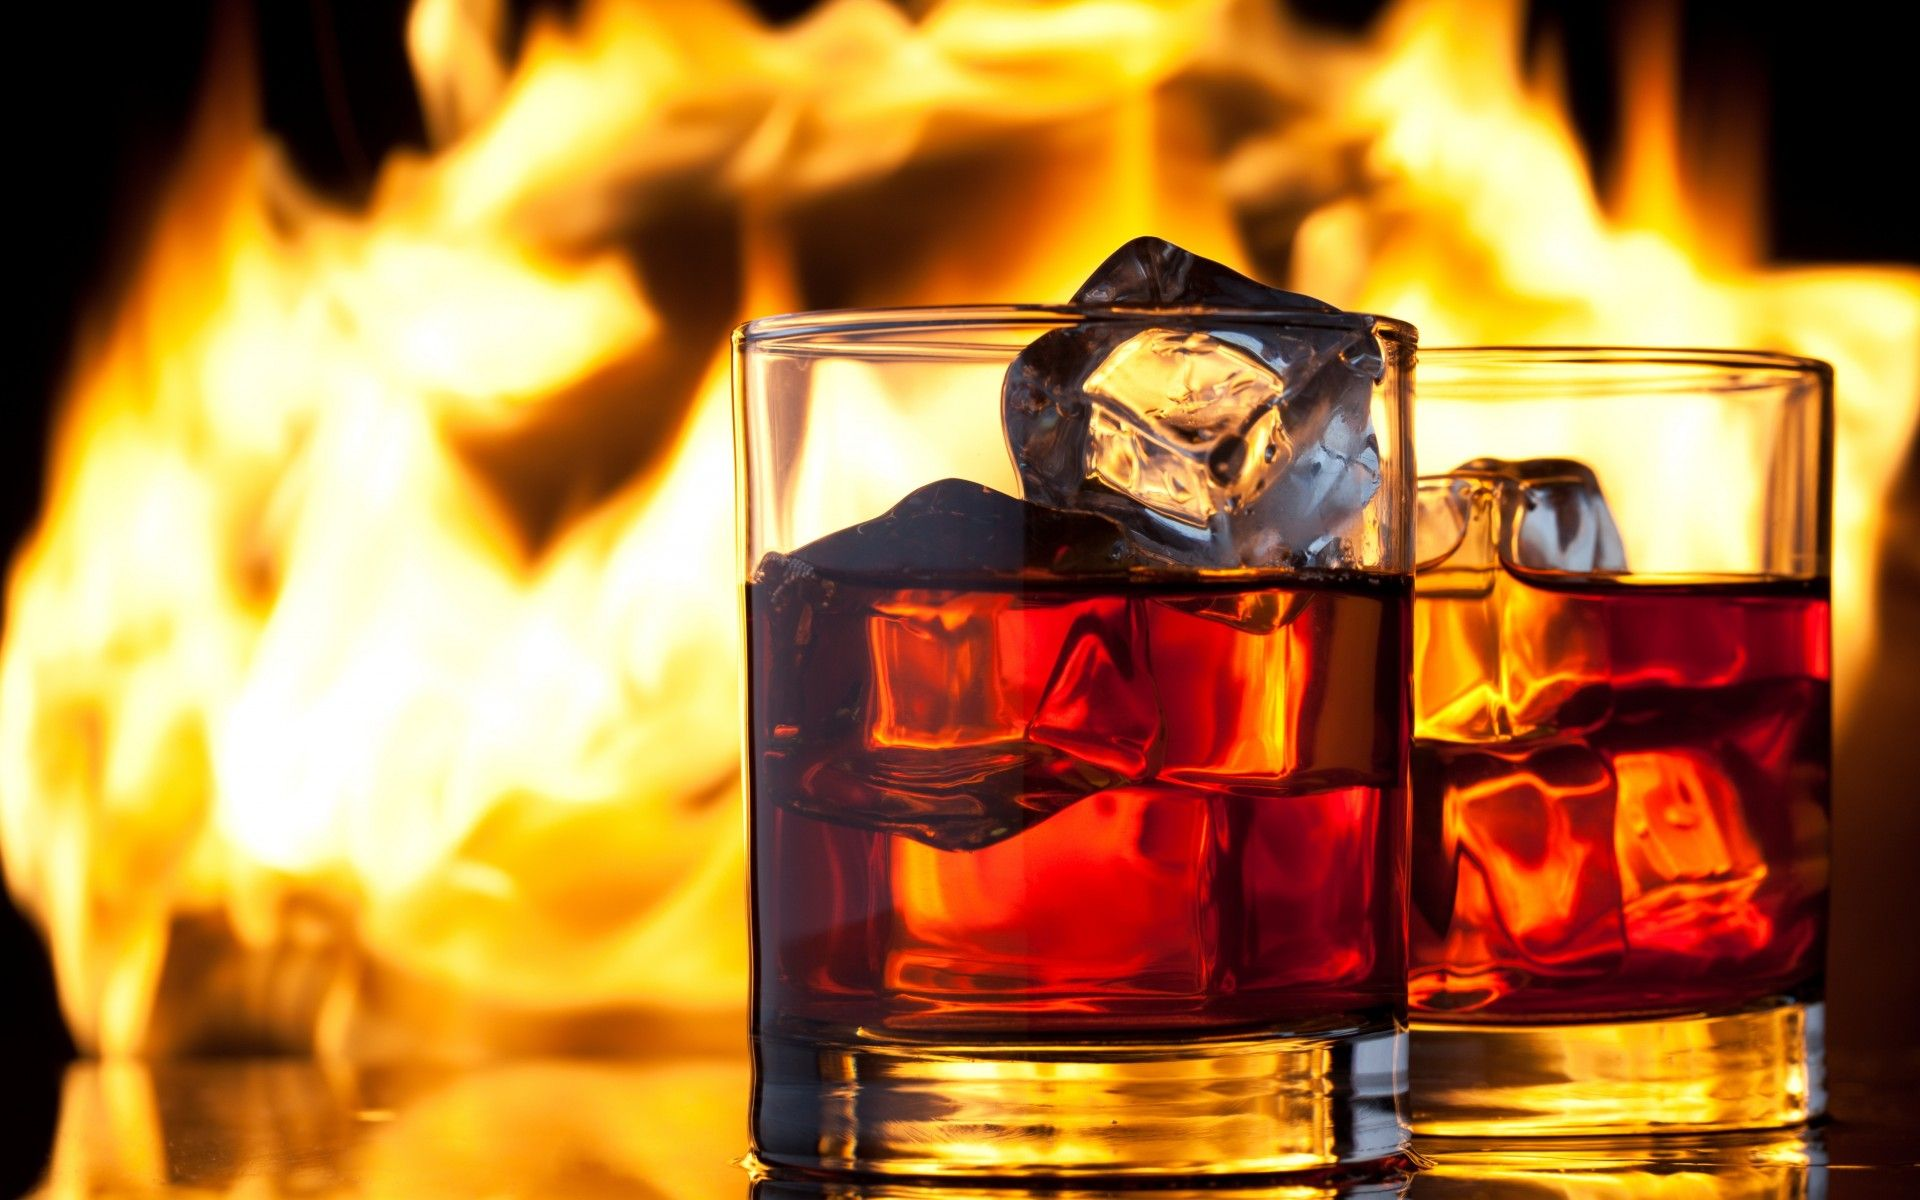 Whiskey Drink Ice Glasses Fire Flame Alchohol Wallpaper 1920x1200 48228 Wallpaperup Whiskey Drinks Whisky Whisky Drinks